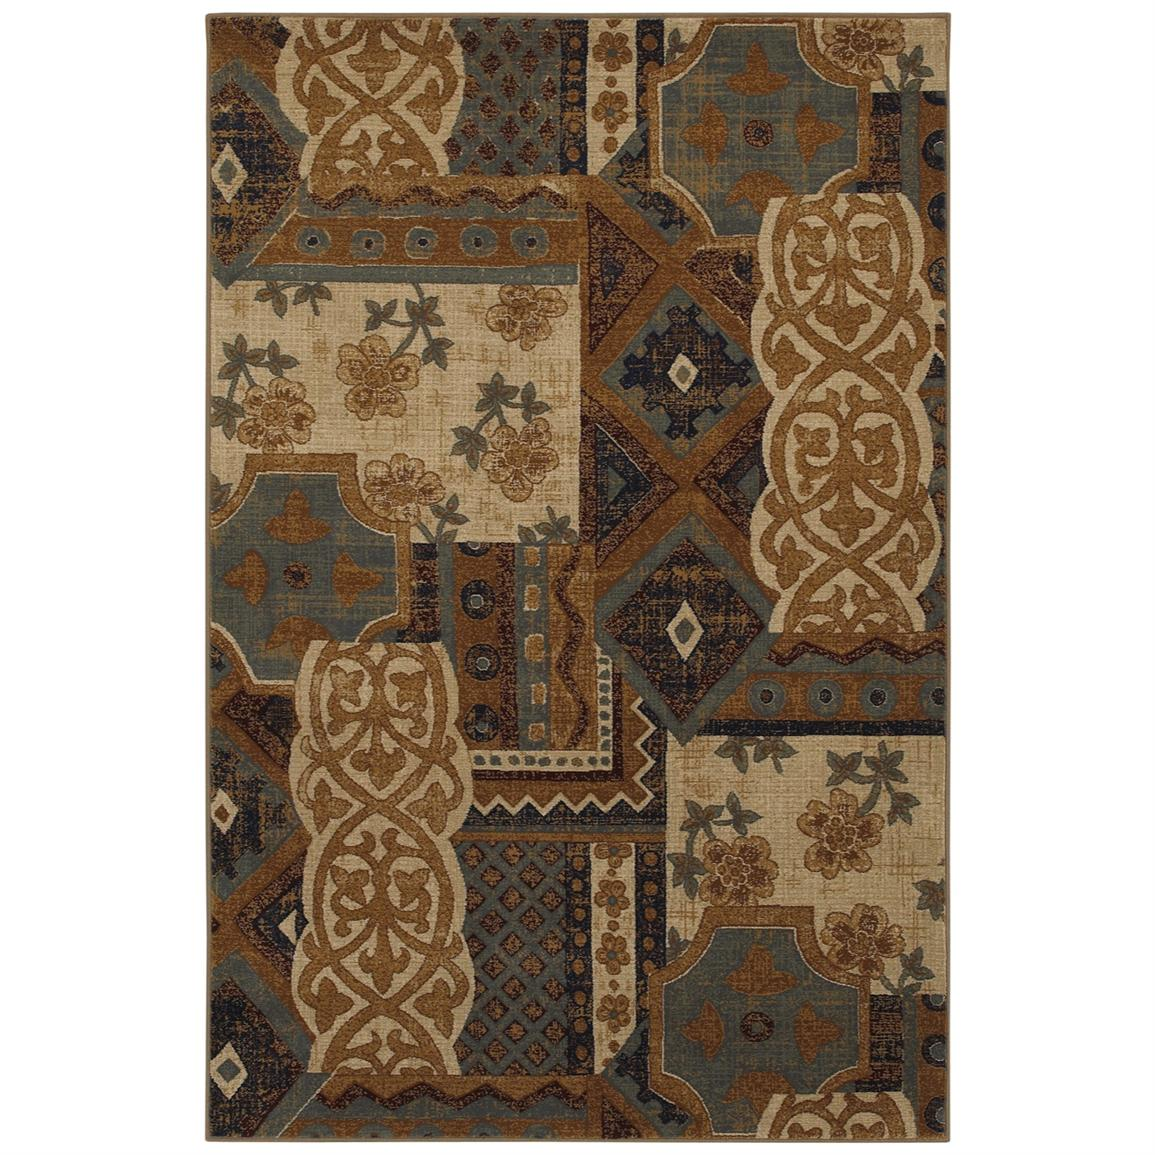 Mohawk® Royal Entrance Rug, 25x94 inches